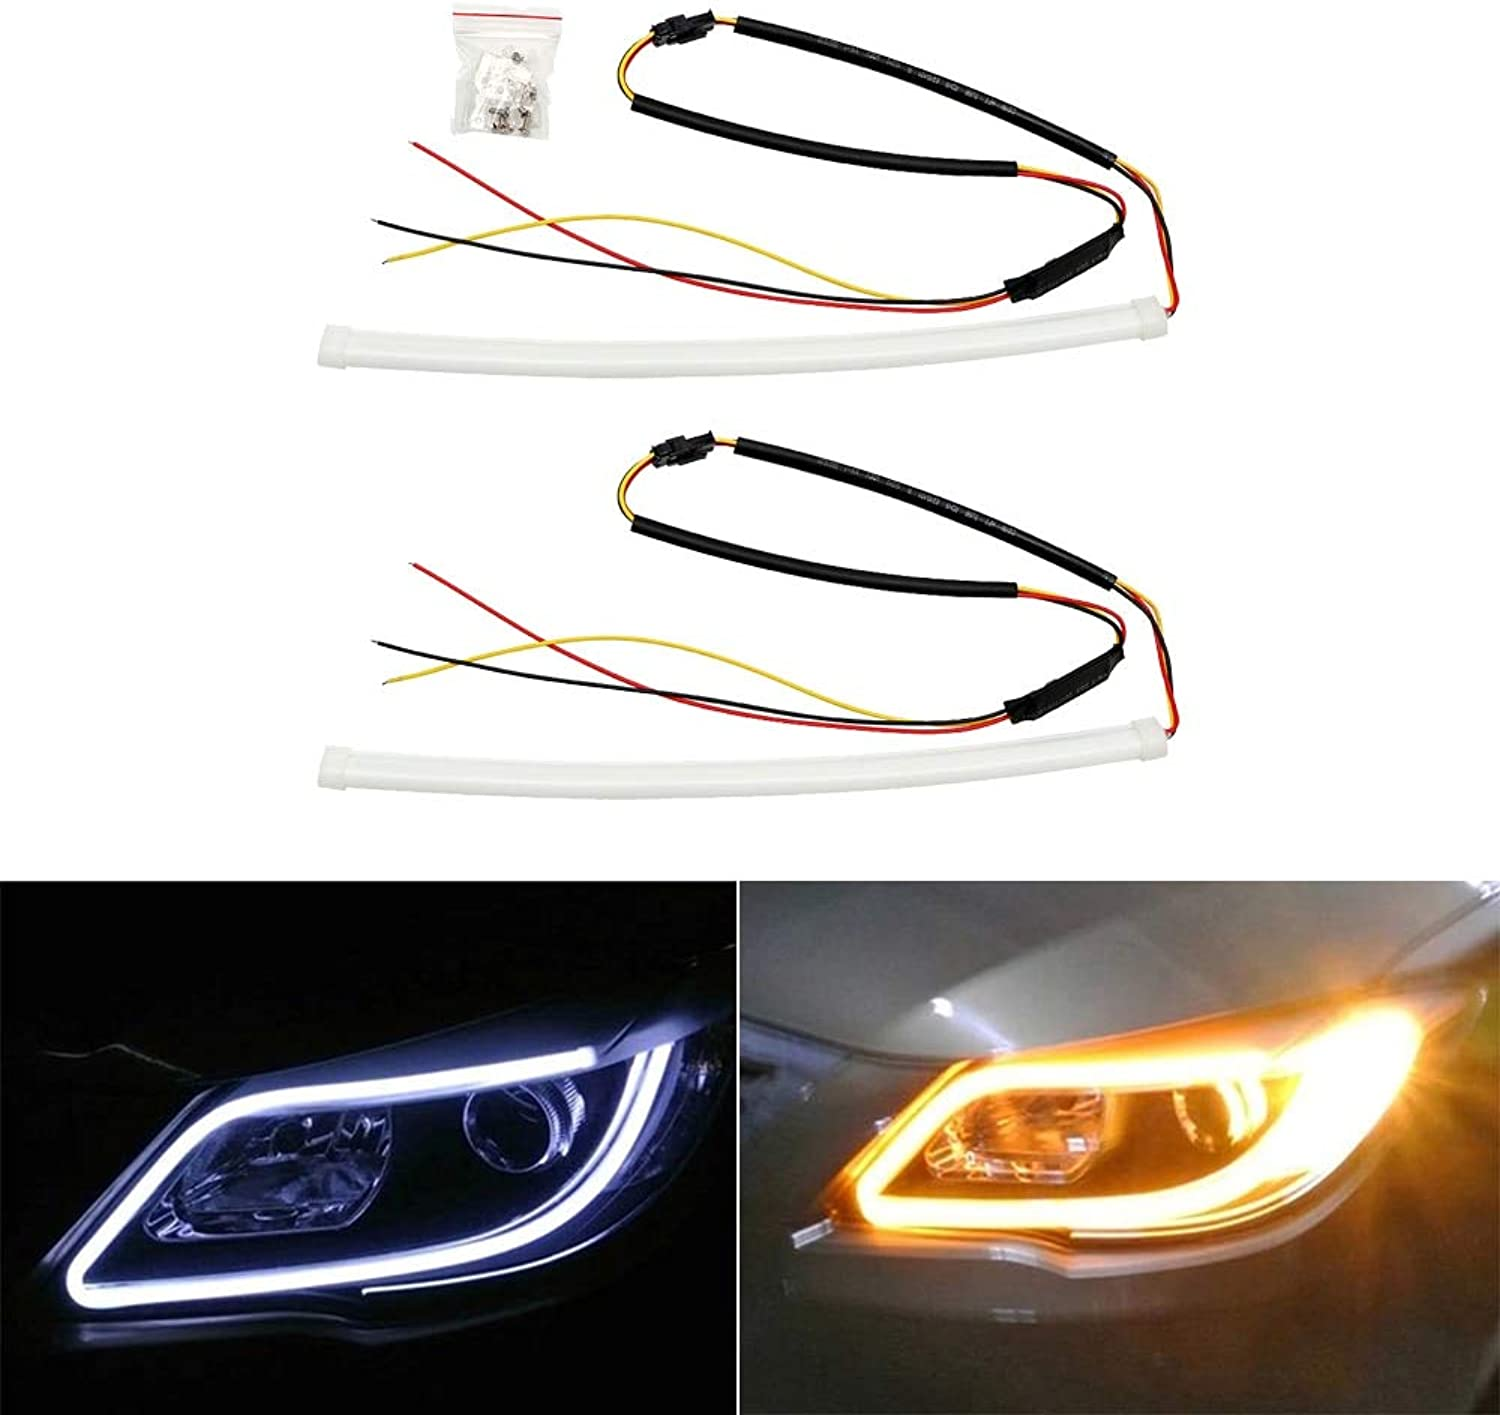 DaphotStore  2x30cm Angel Eye LED Car DRL Daytime Running Light Auto Turn Indicators Signal Lamps Single Dual color Waterproof CarStyling